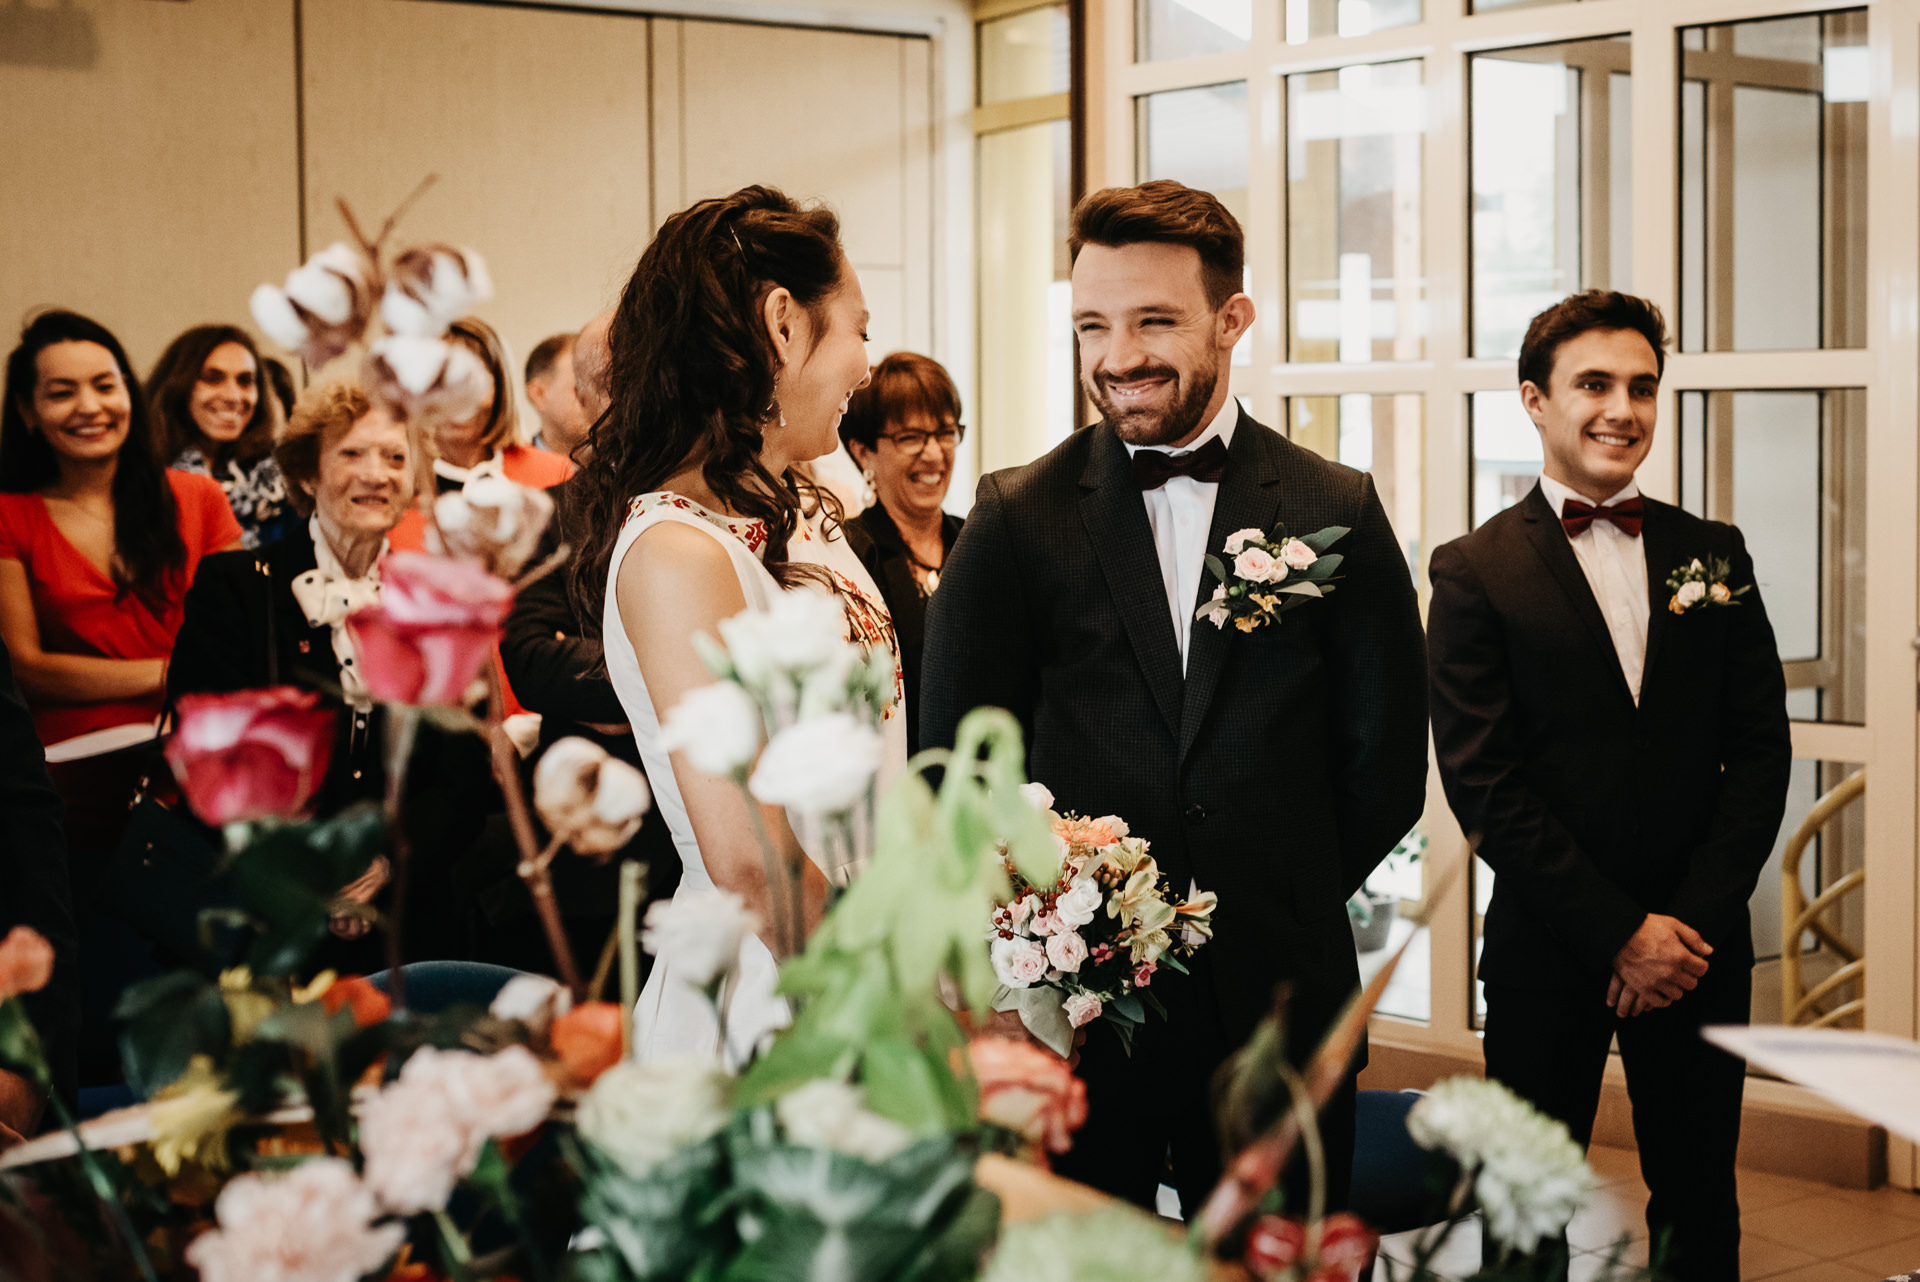 French Wedding Elopement Ceremony Image | the bride does not speak French, the groom attempts to translate